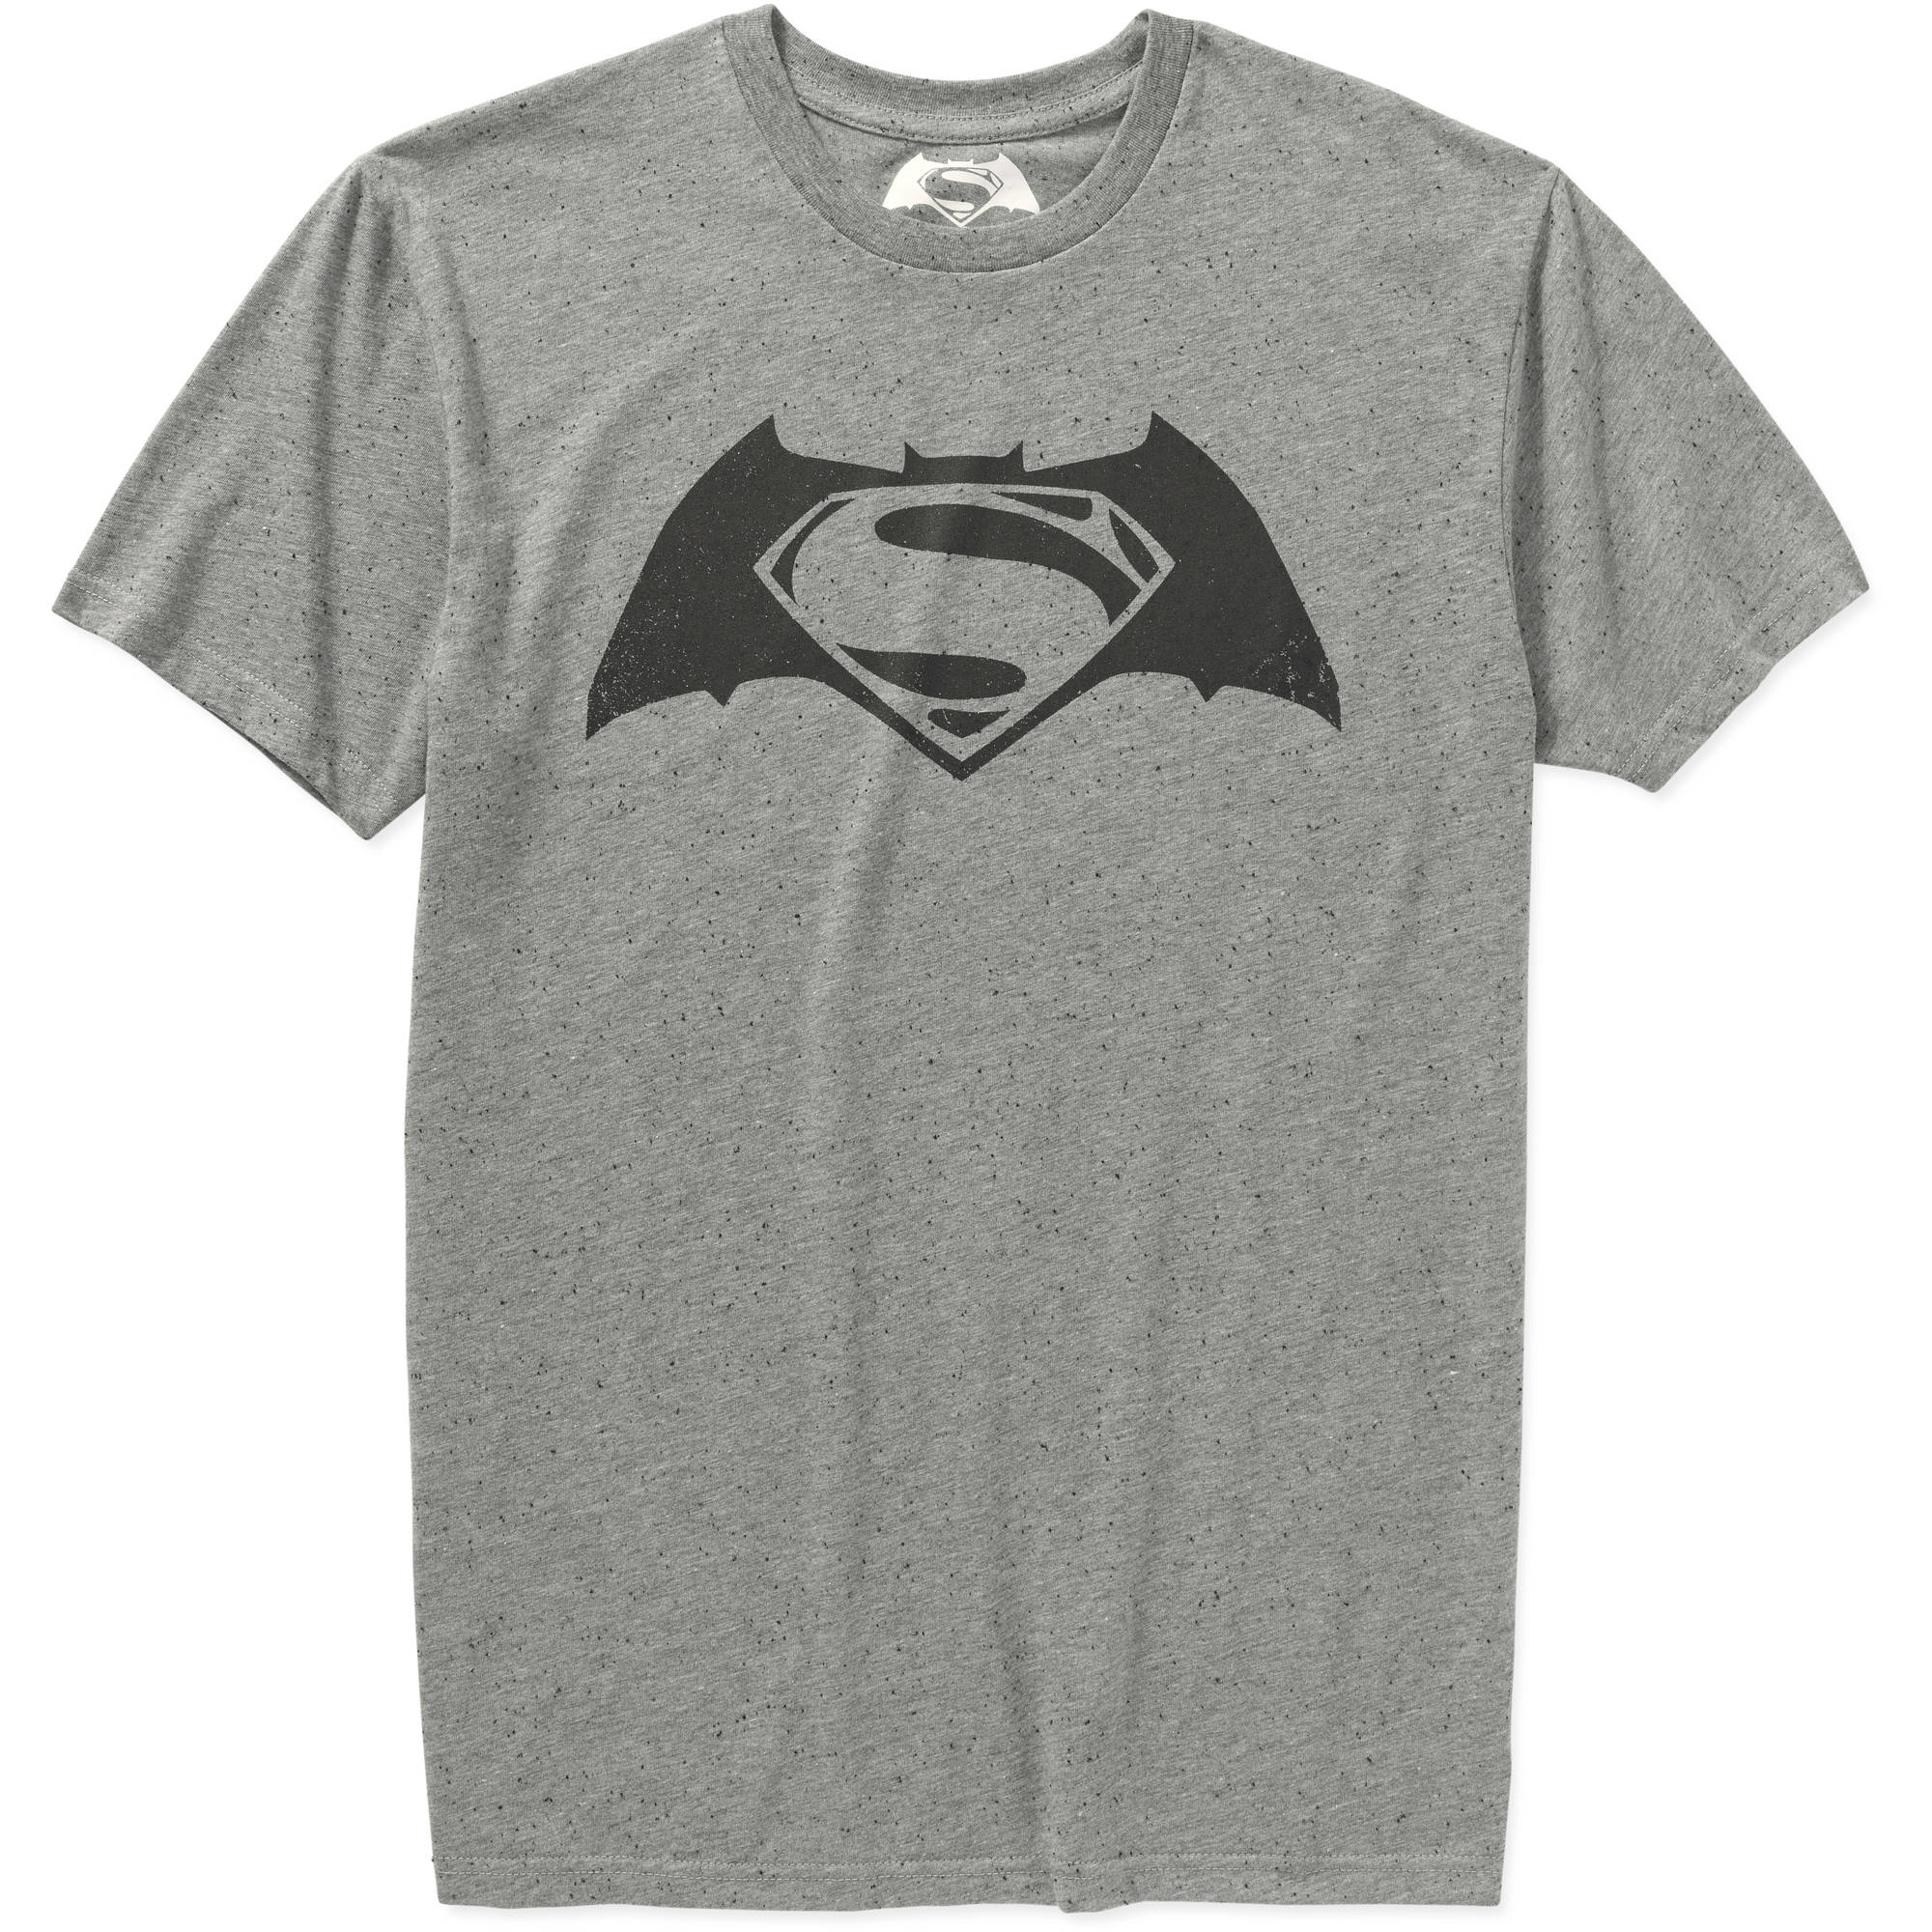 Batman vs. Superman Men's Graphic Tee